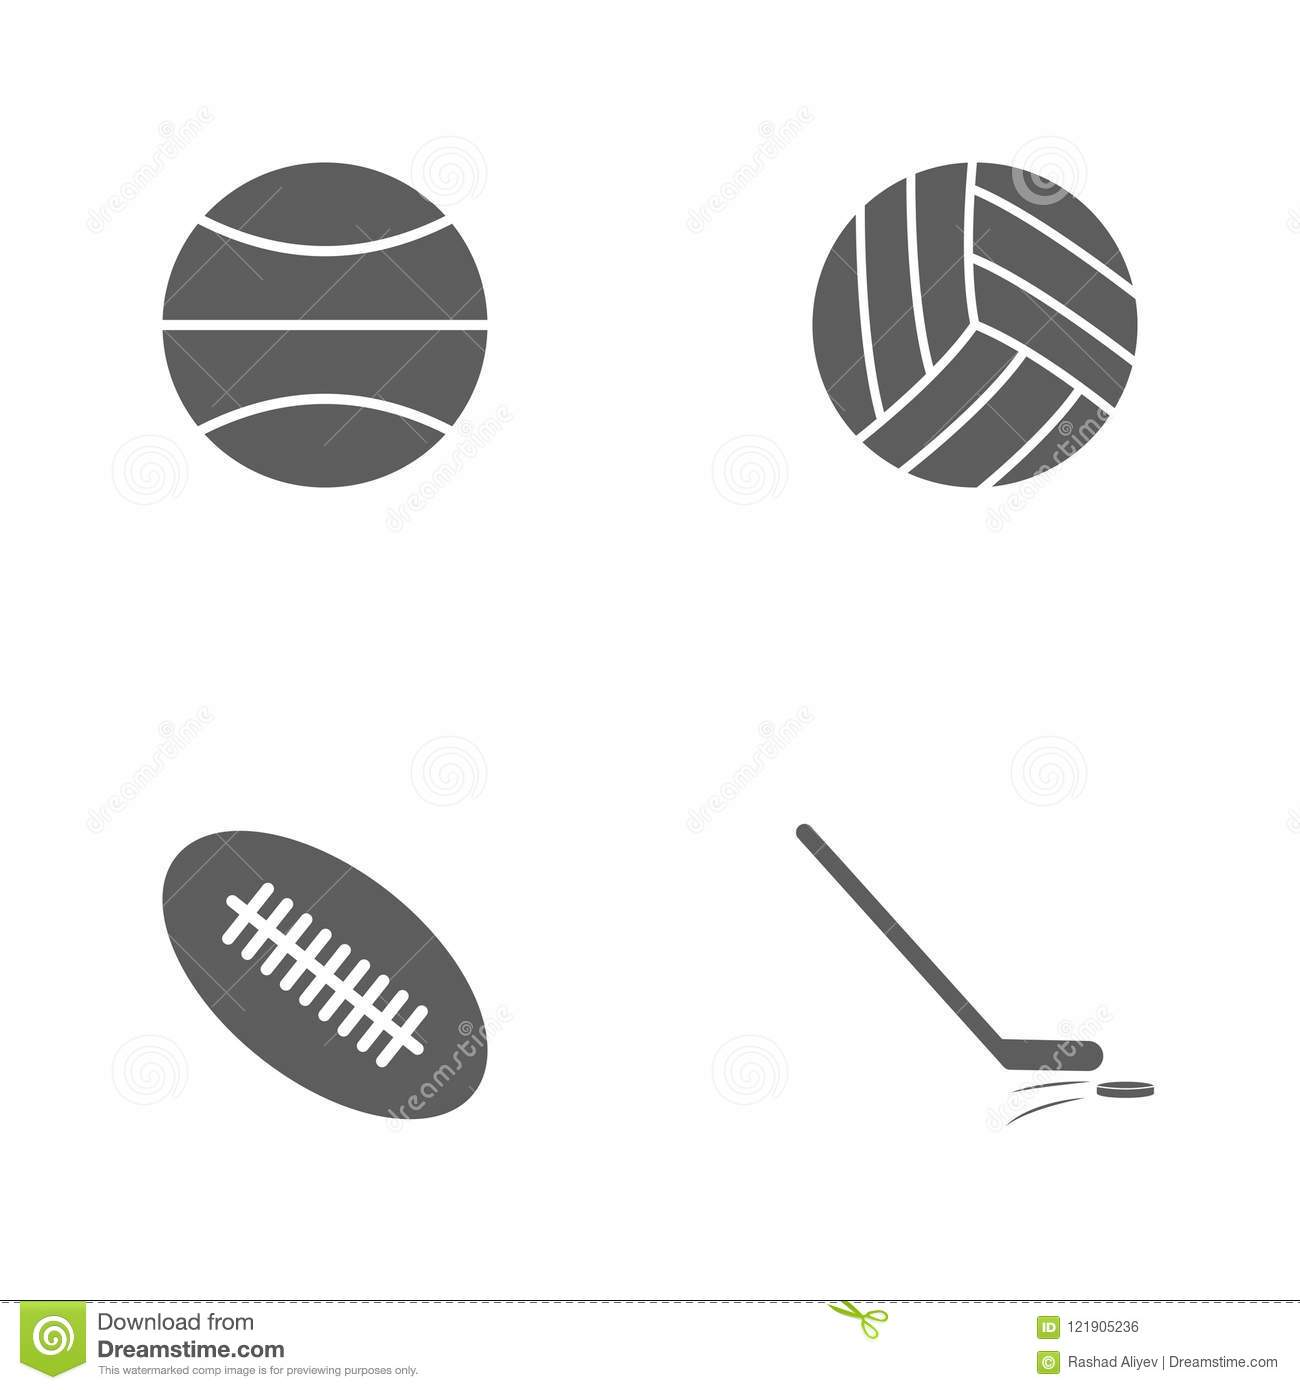 Vector illustration set sport icons. Elements stick and washer, rugby ball, volleyball and basketball icon